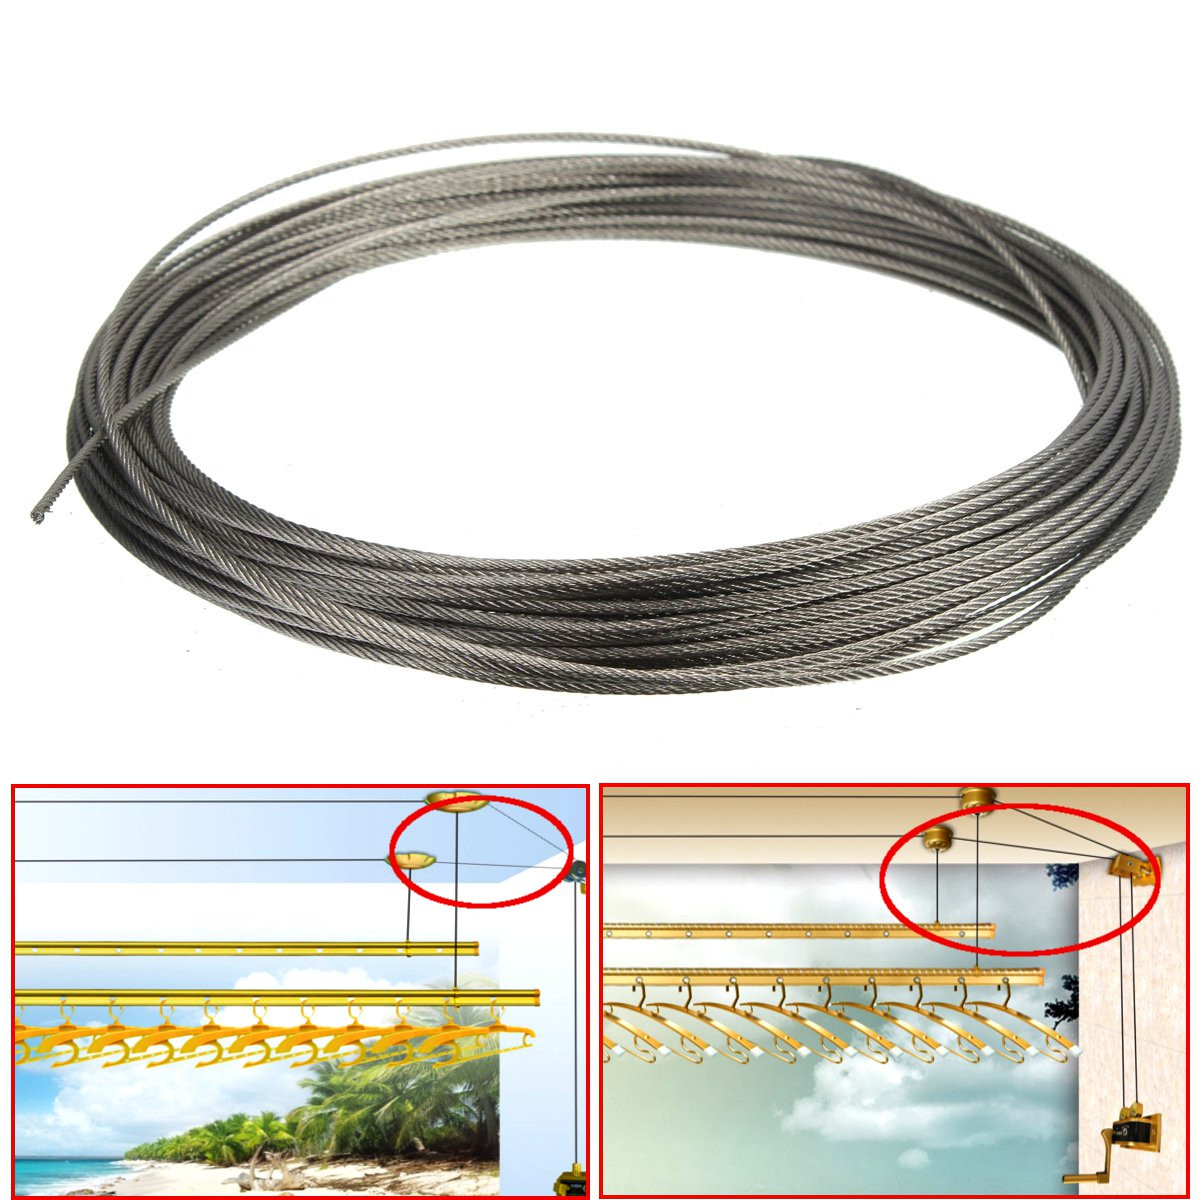 15m 316 stainless steel clothes cable line wire rope. Black Bedroom Furniture Sets. Home Design Ideas